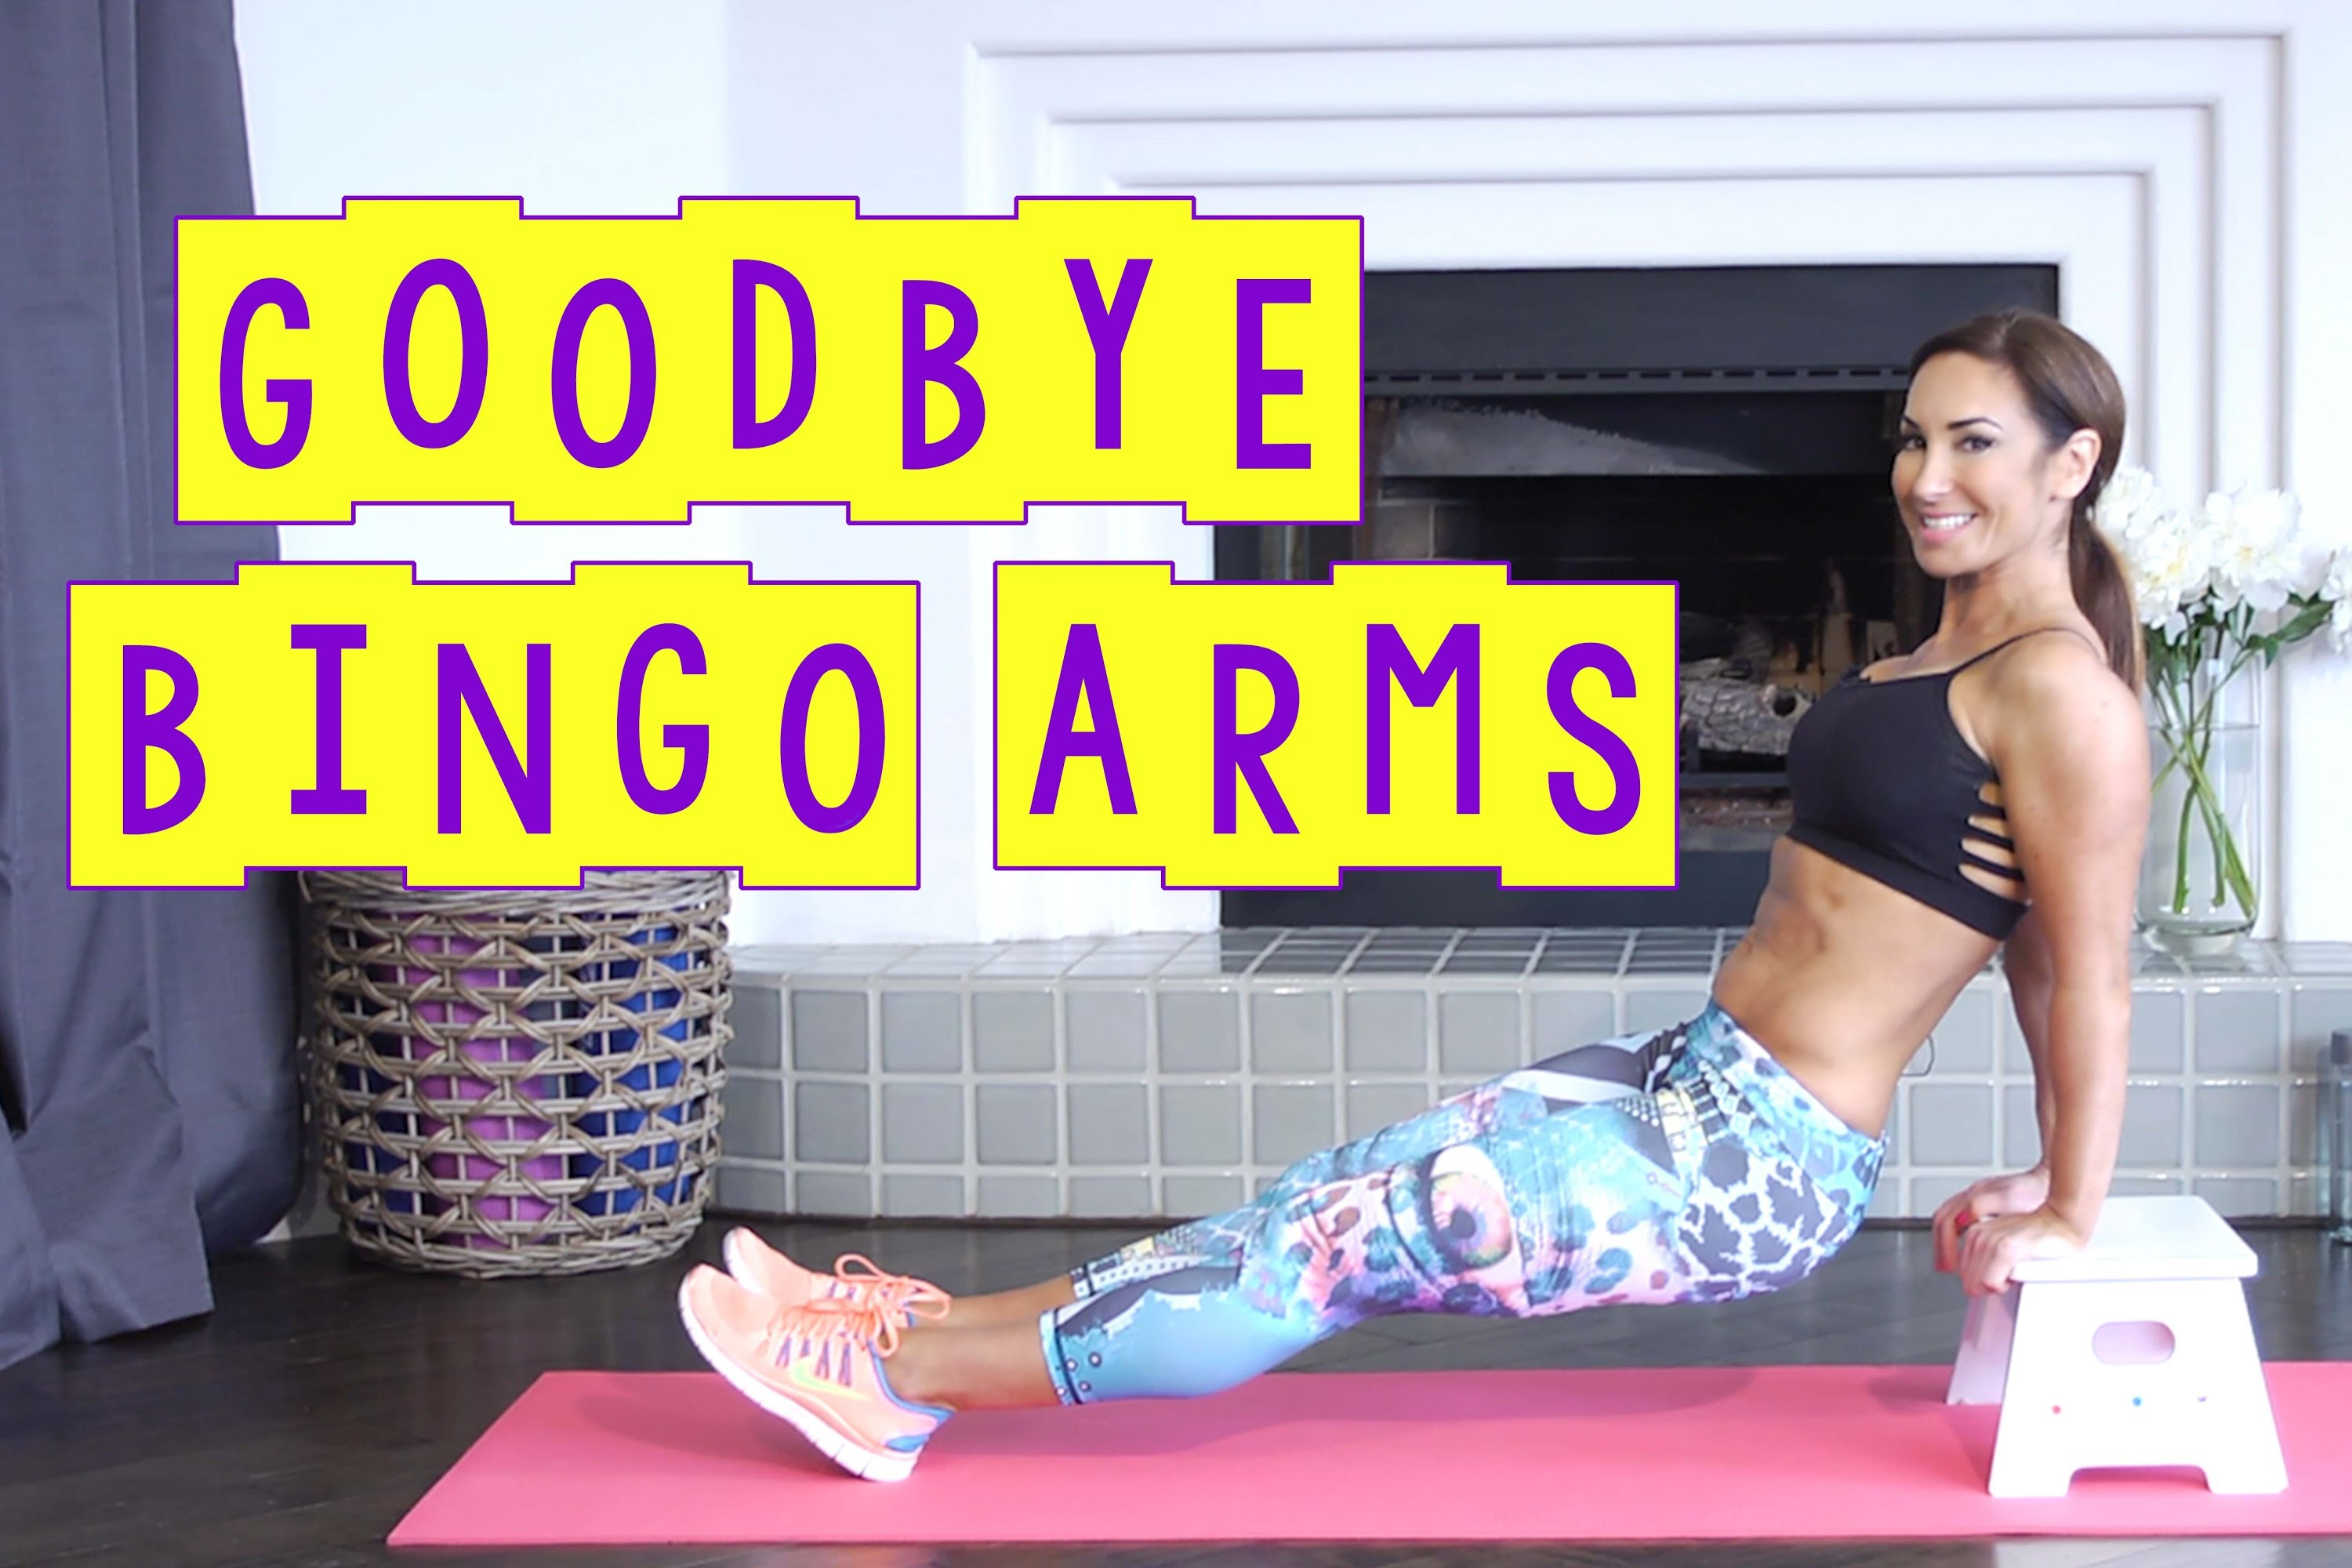 Best Tricep Workout To Get Rid Of Those Bingo Arms | Natalie Jill